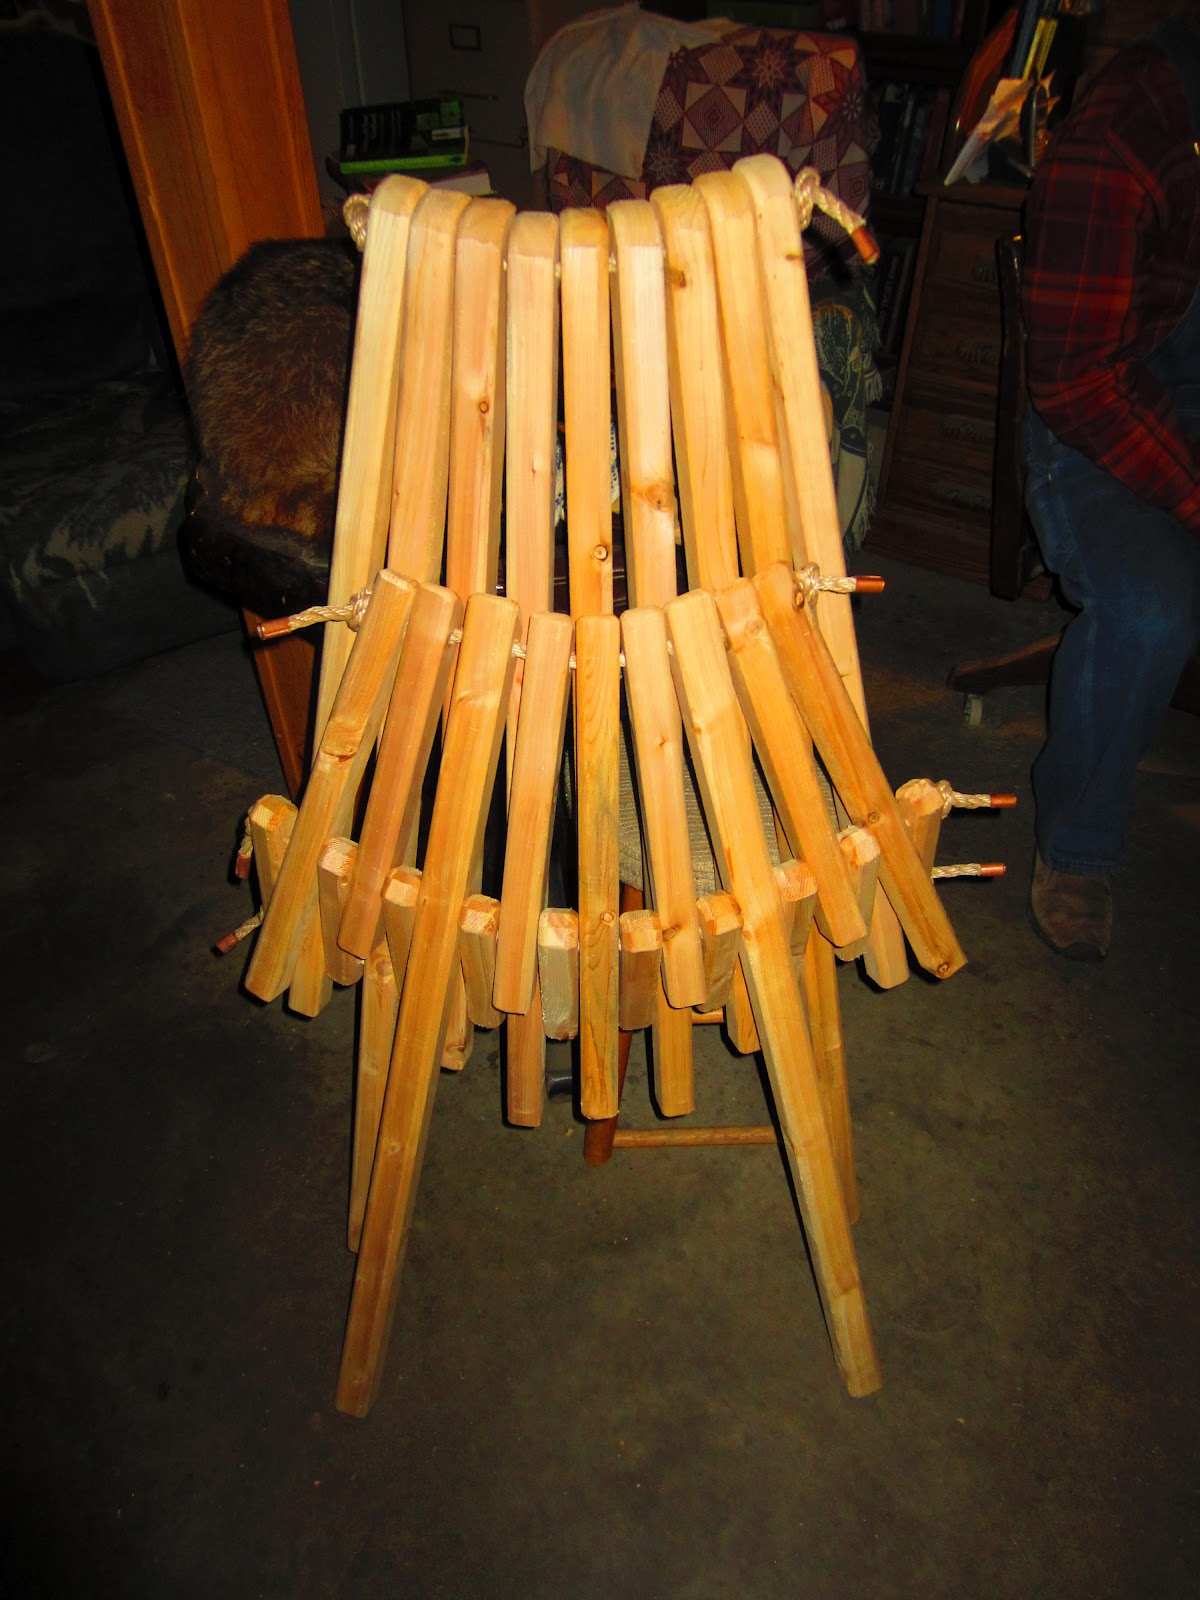 Super Simple Folding Adirondack Chair for Tiny Homes Porches